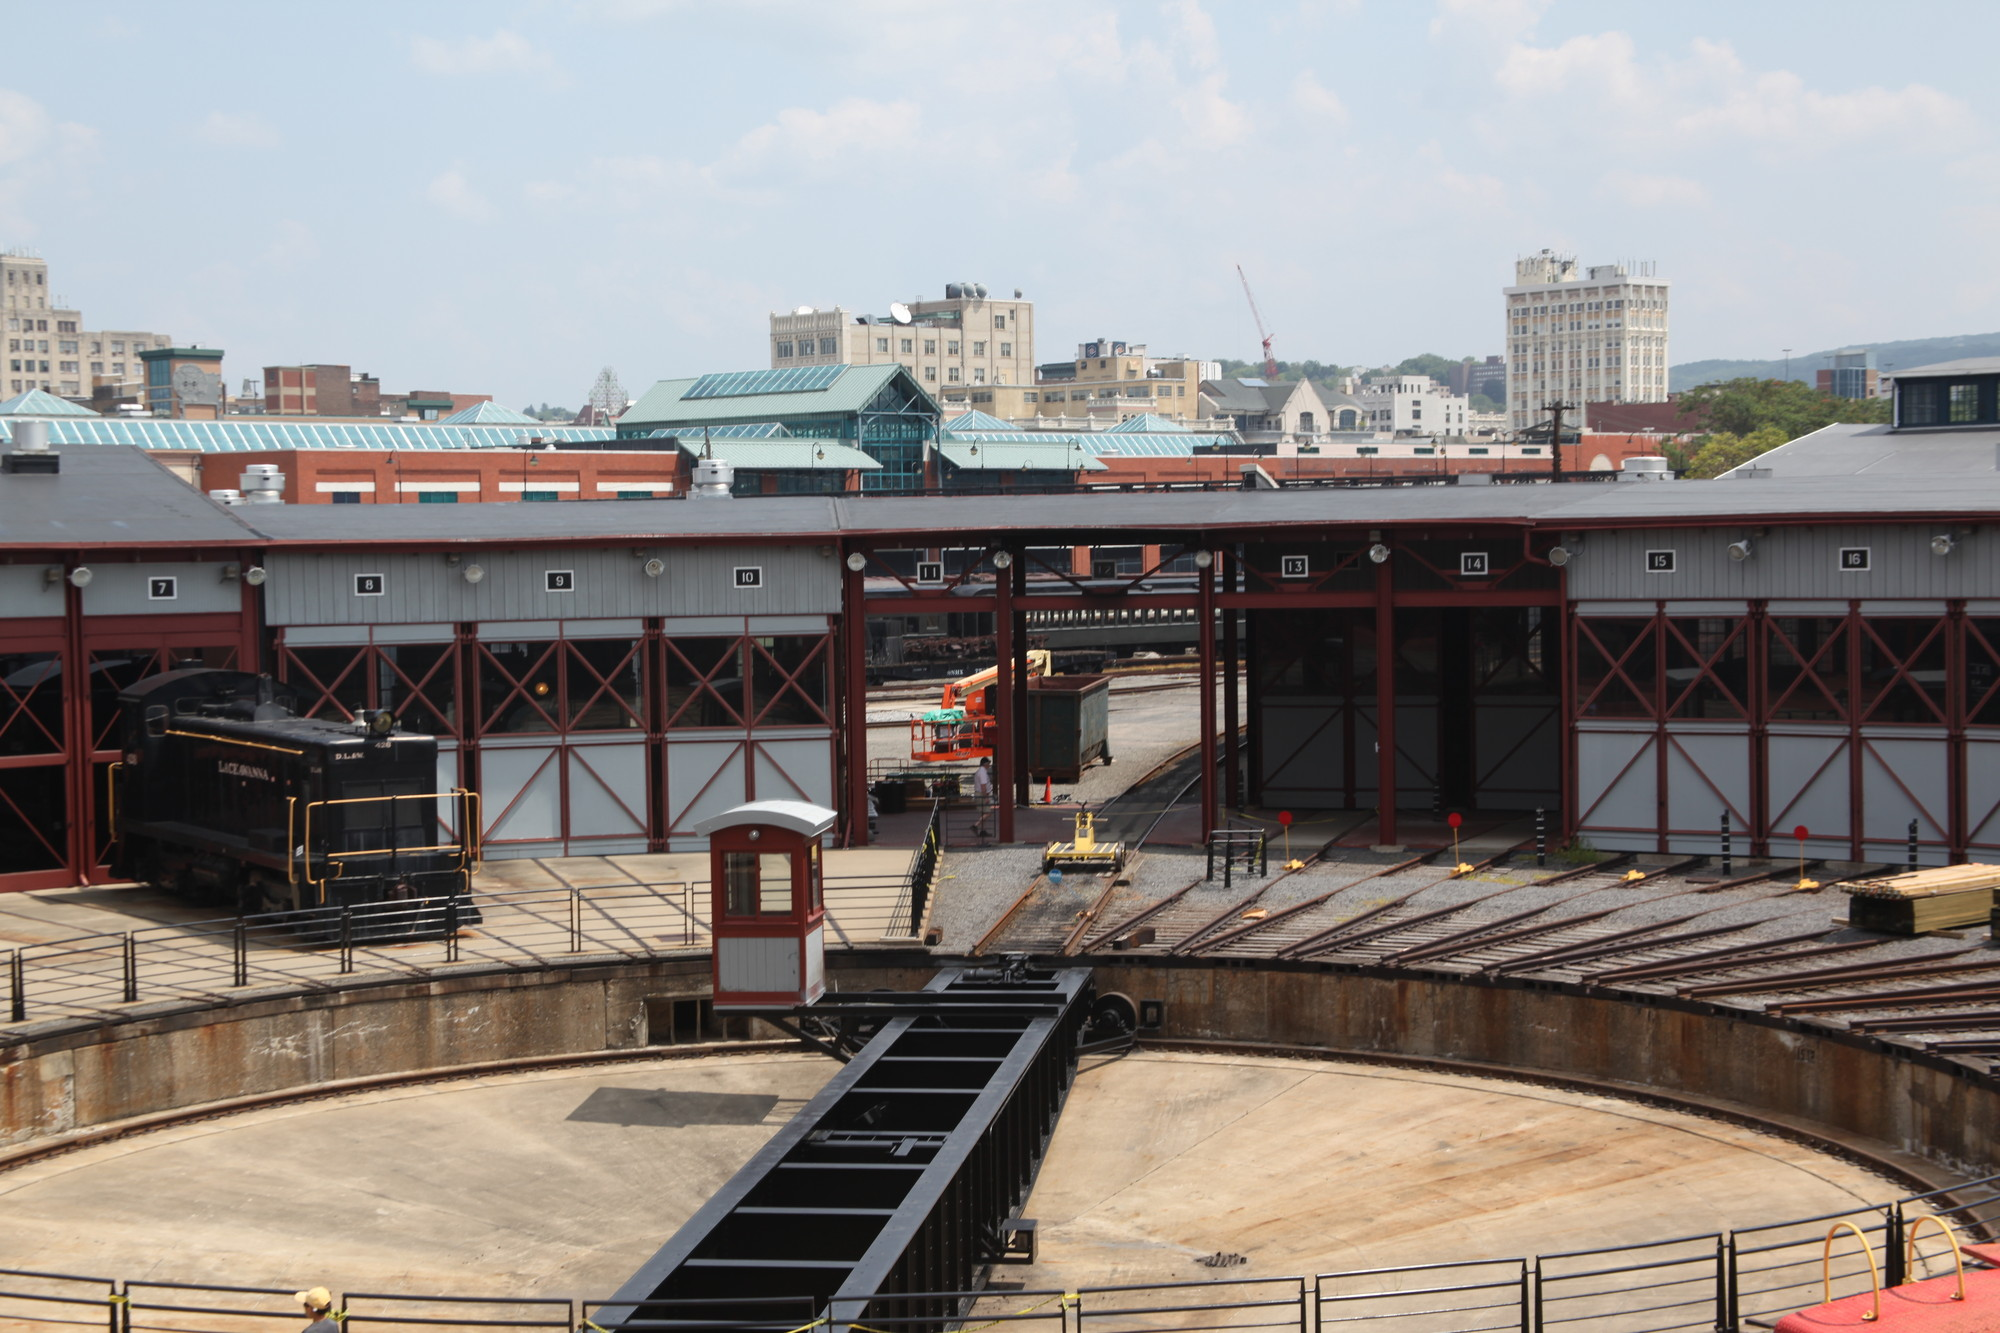 Roundhouse and turntable, Steamtown National Historic Site, Scranton, PA. Image Courtesy of The Van Alen Institute